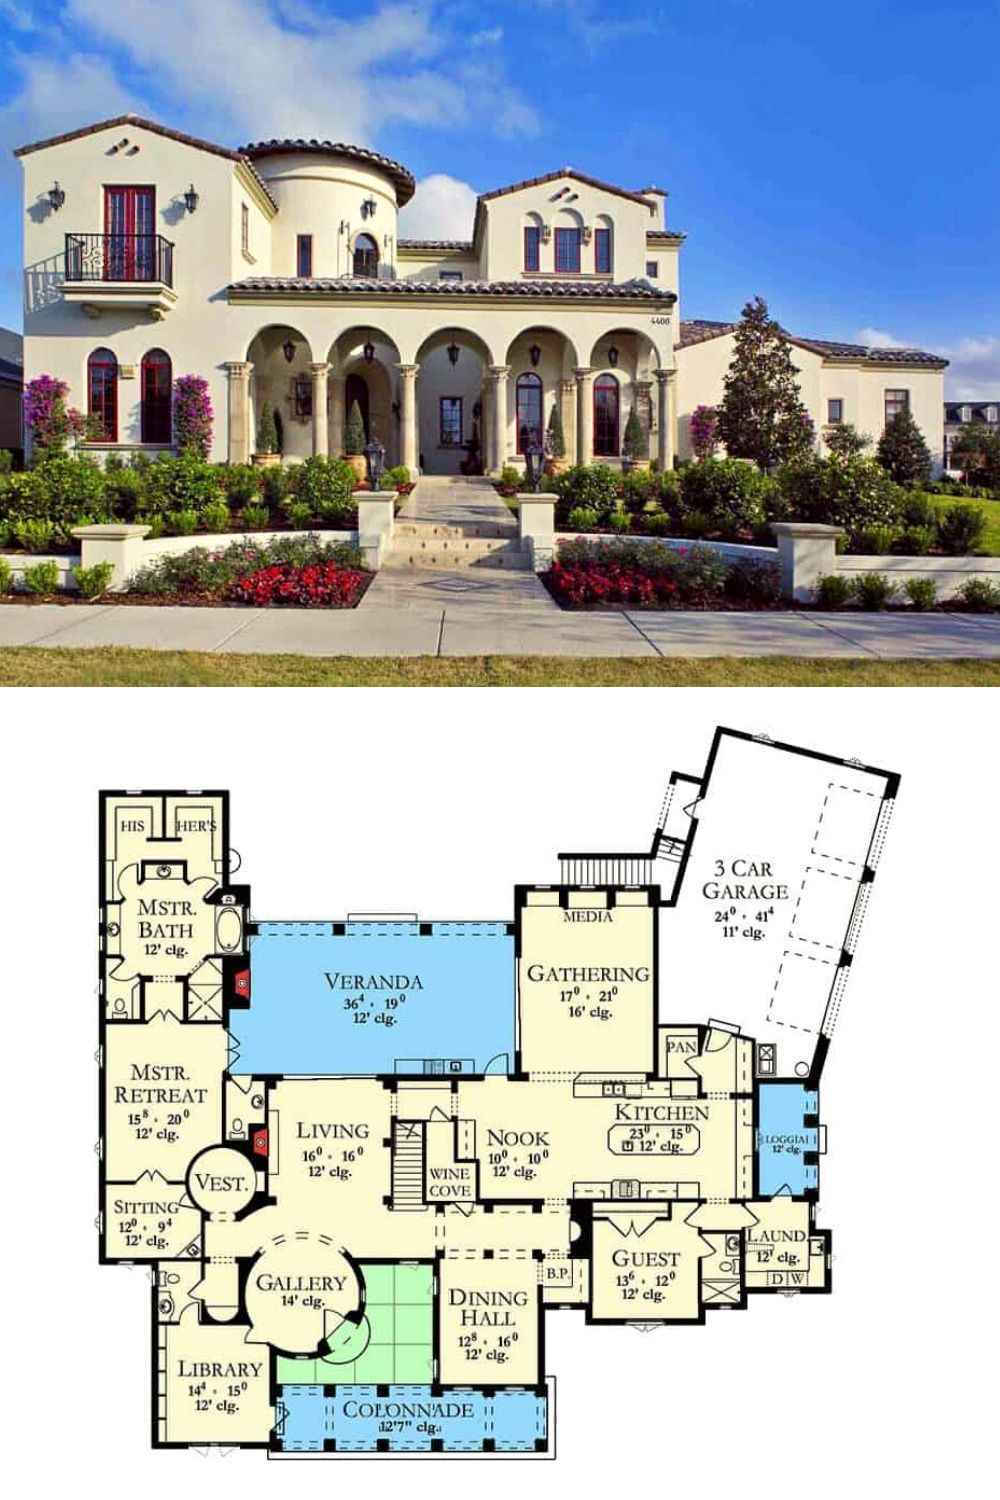 6 Bedroom Two Story Spanish Villa With Studio Floor Plan Spanish Villa Spanish House Plans Spanish Style House